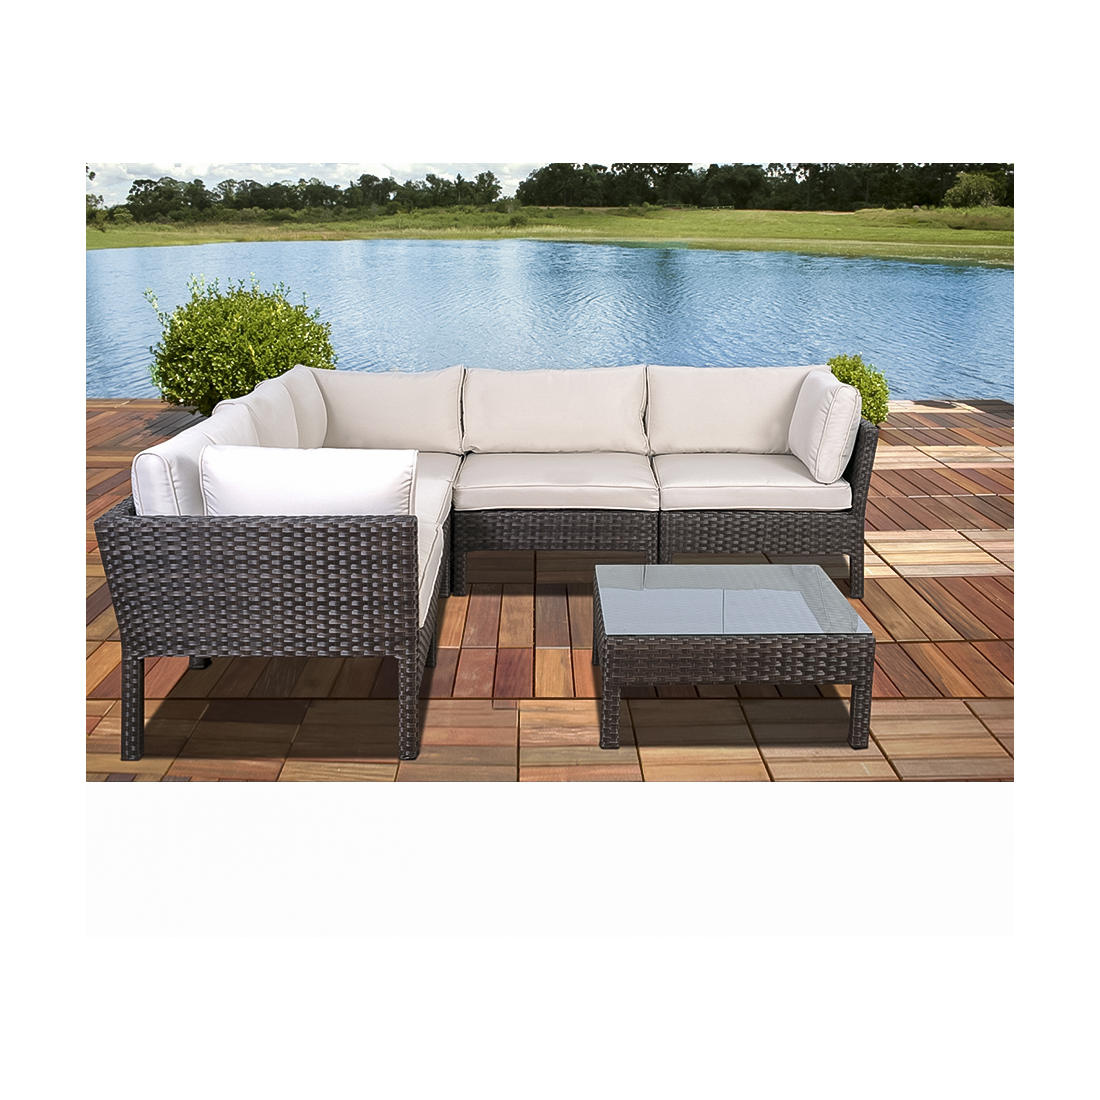 Atlantic Santa Lucia 6 Pc Outdoor Sectional Set Dark Brown Off